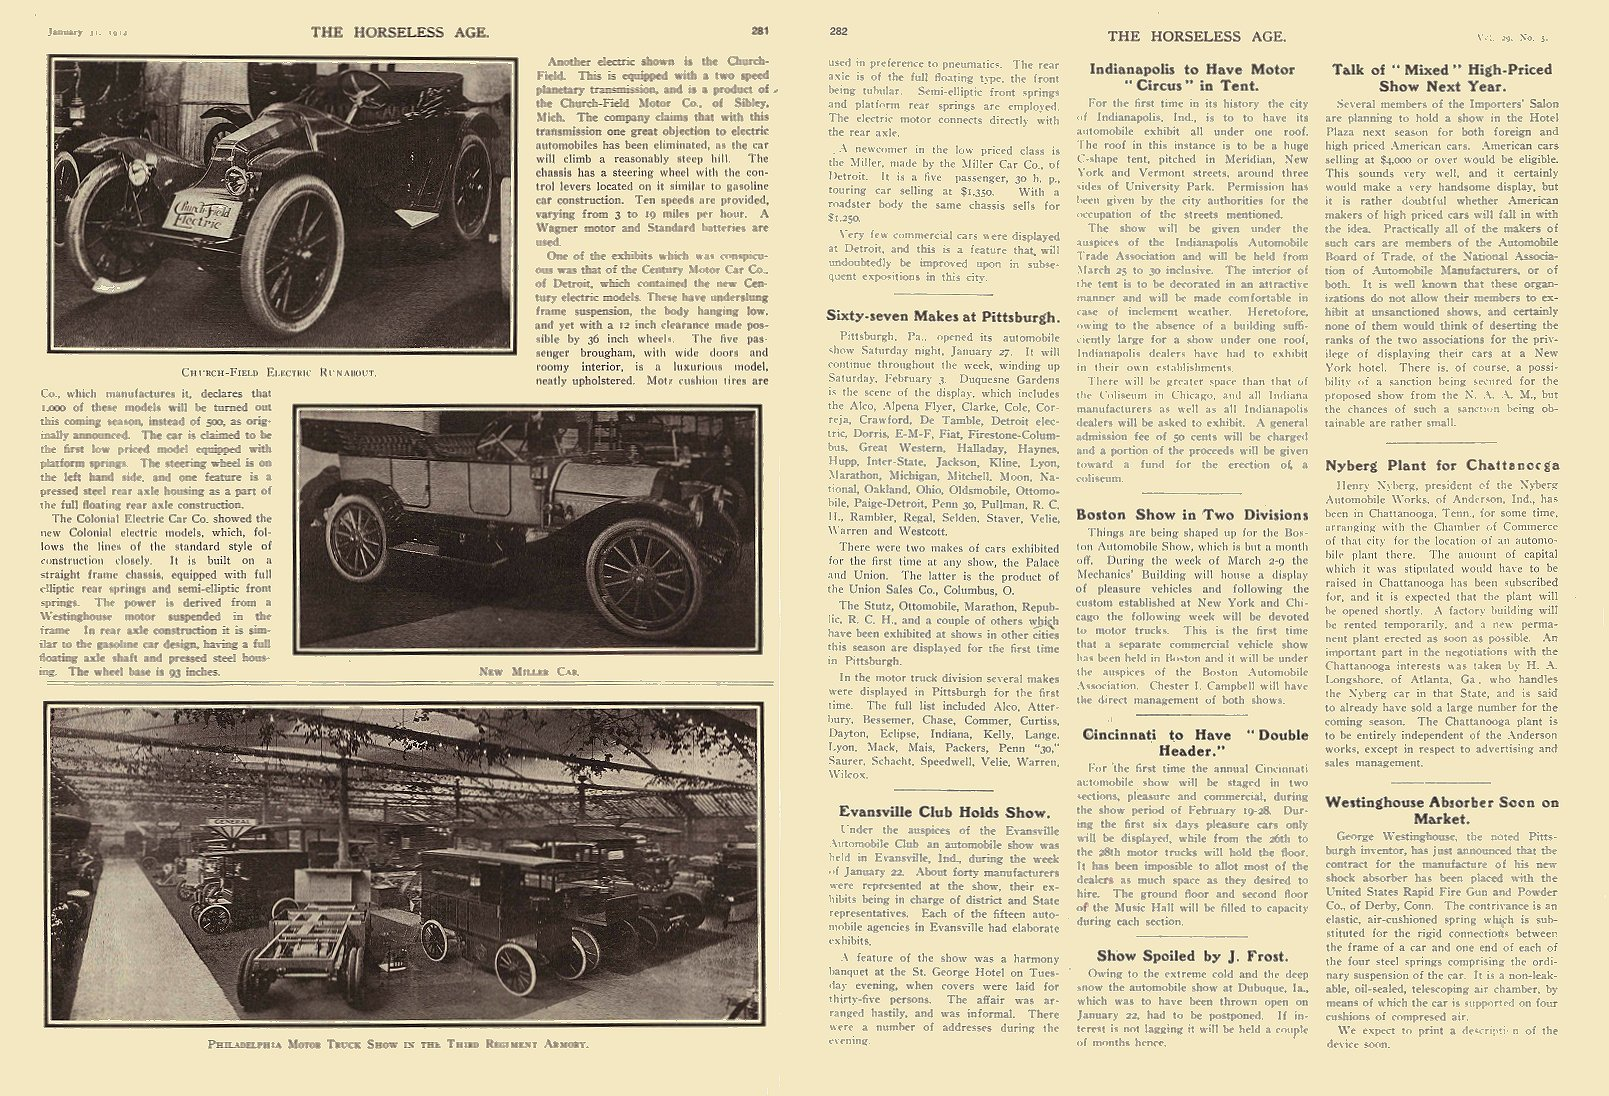 1912 1 31 CHURCH-FIELD Electric Runabout The Church-Field Motor Co Sibley, MICH THE HORSELESS AGE January 31, 1912 8.25″x12″ page 281